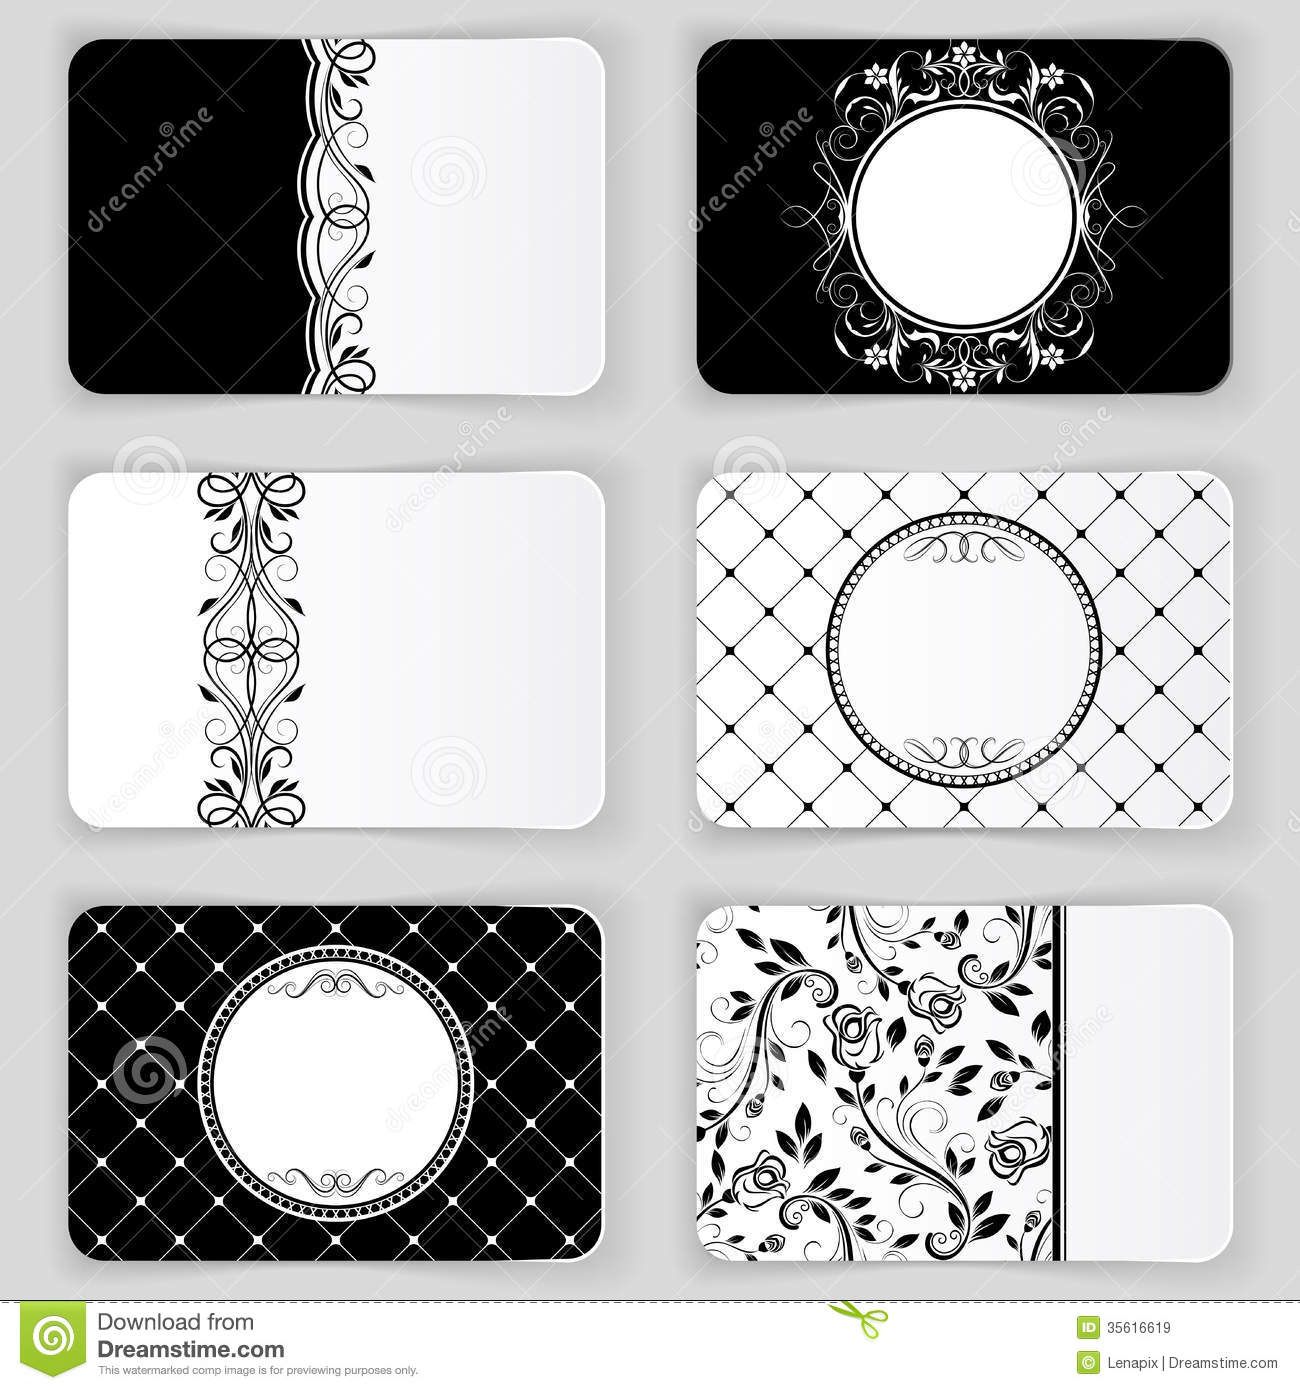 Black and white card template reheart Images